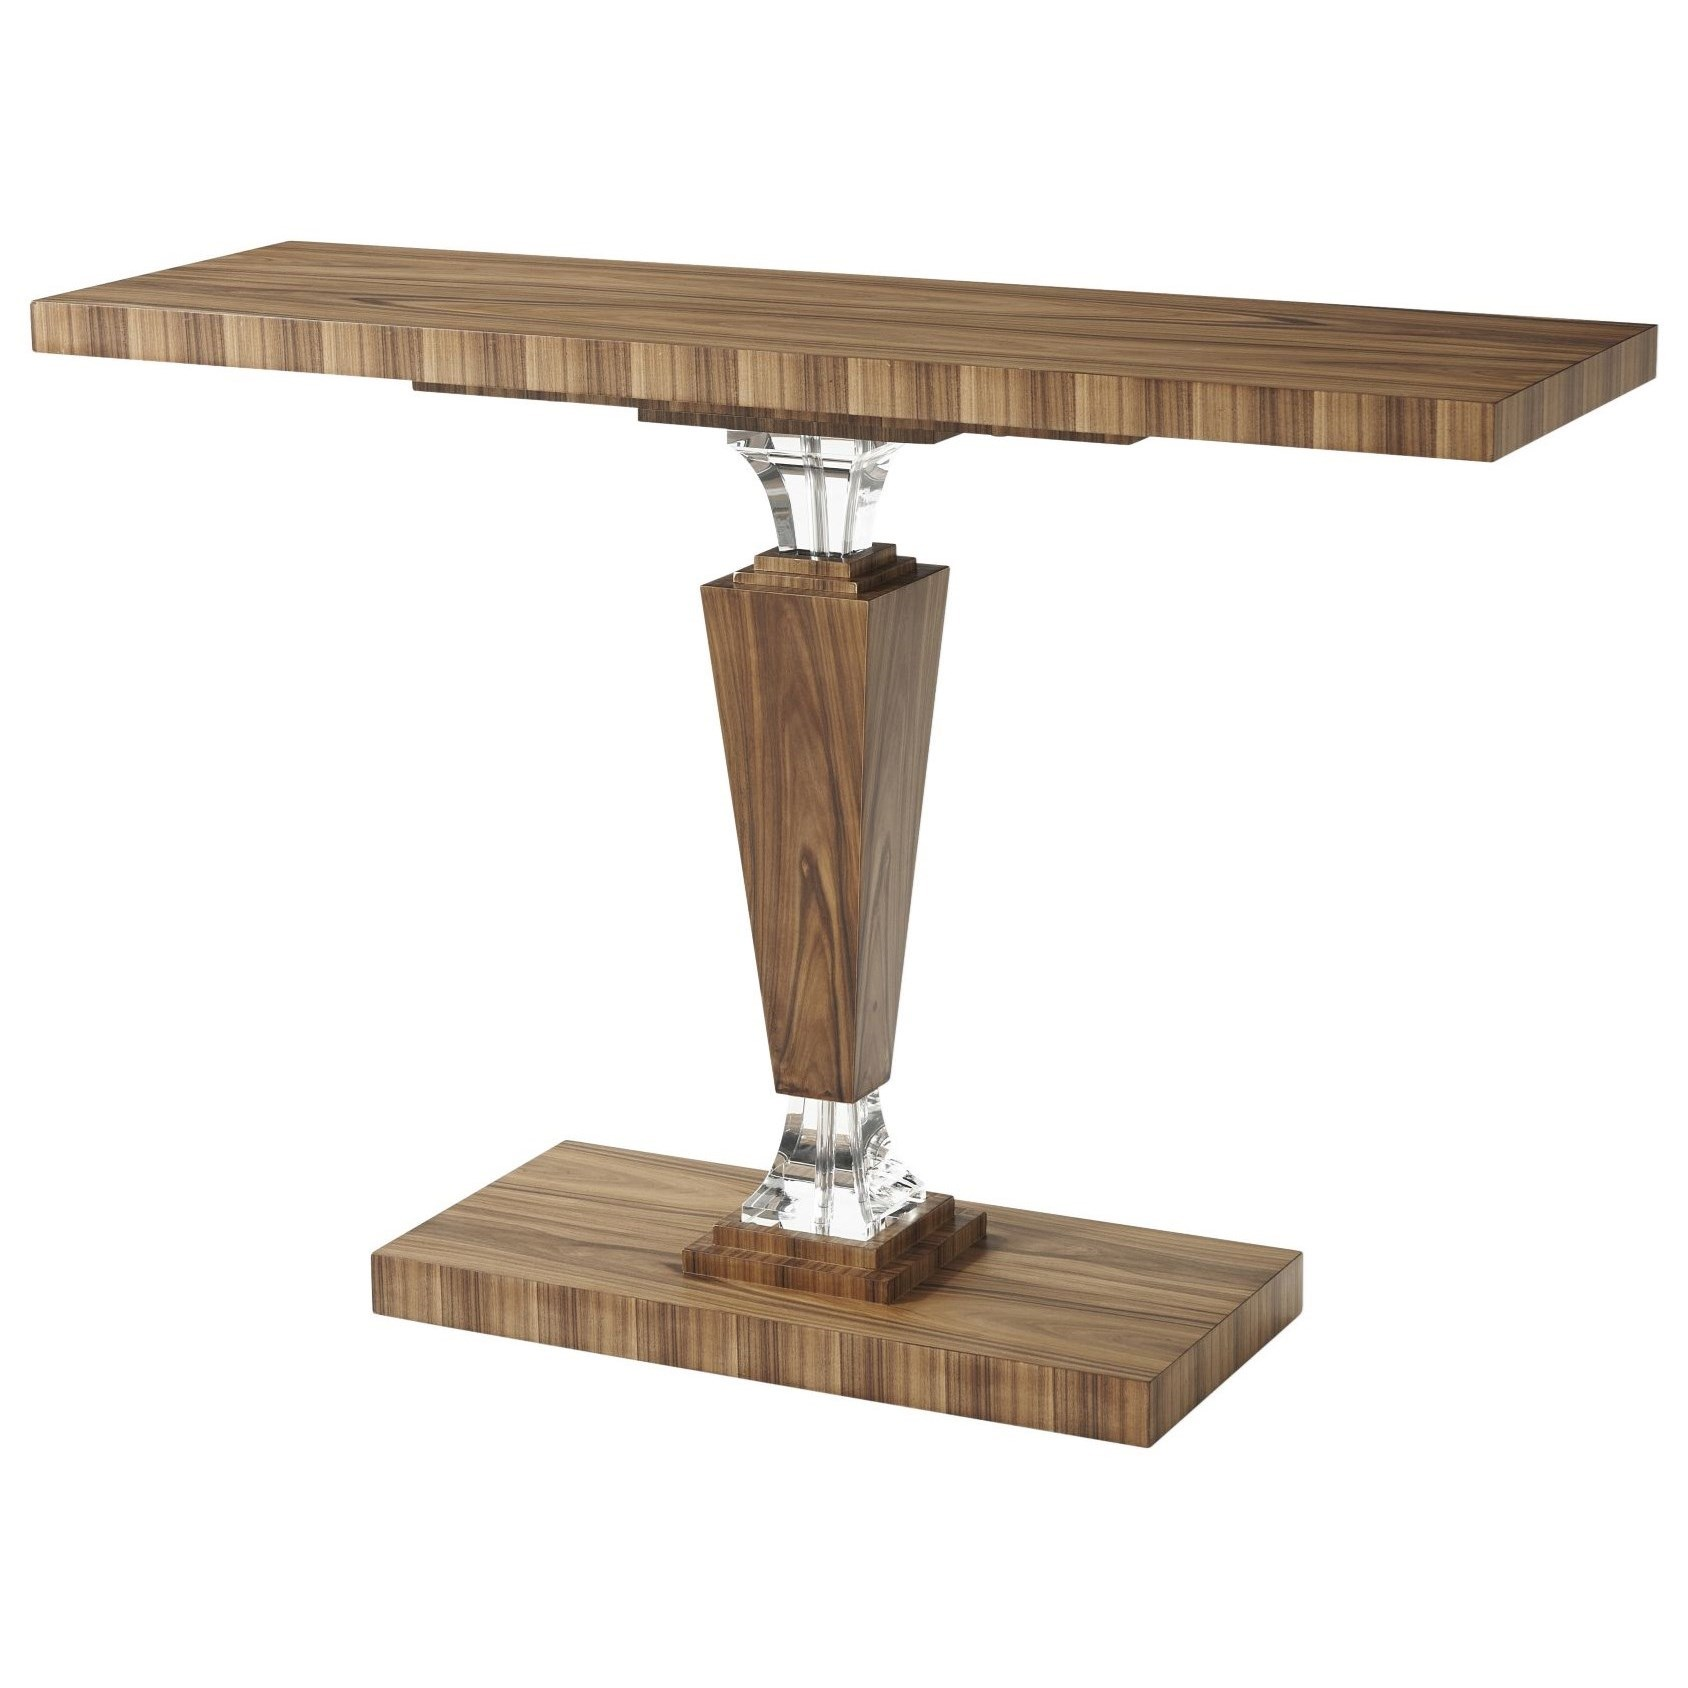 Tables Optical Illusion Console Table by Theodore Alexander at Baer's Furniture